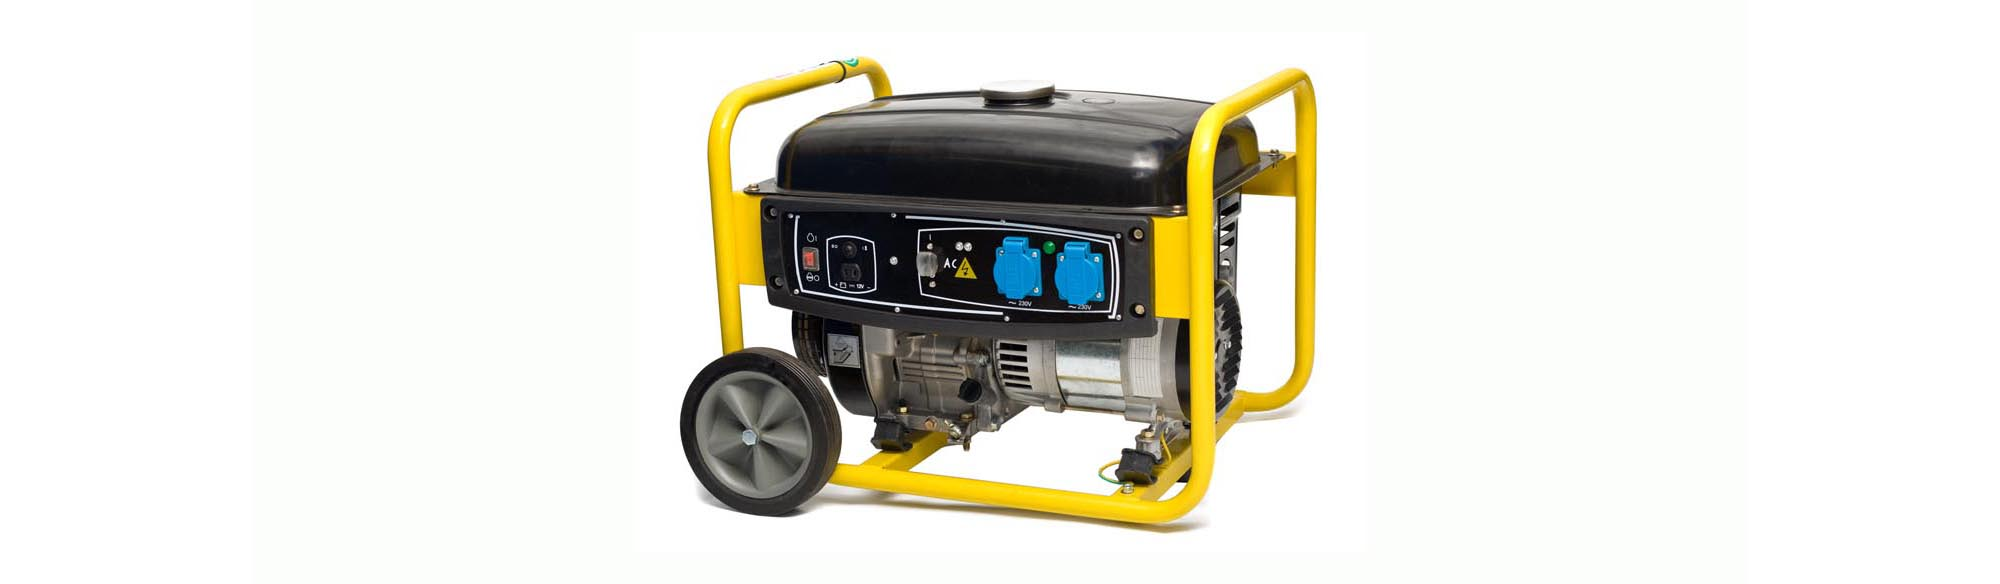 Standby Generators Wheaton Plumbing A Portable Generator To Breaker Panel Wiring Diagram For Your Home Power